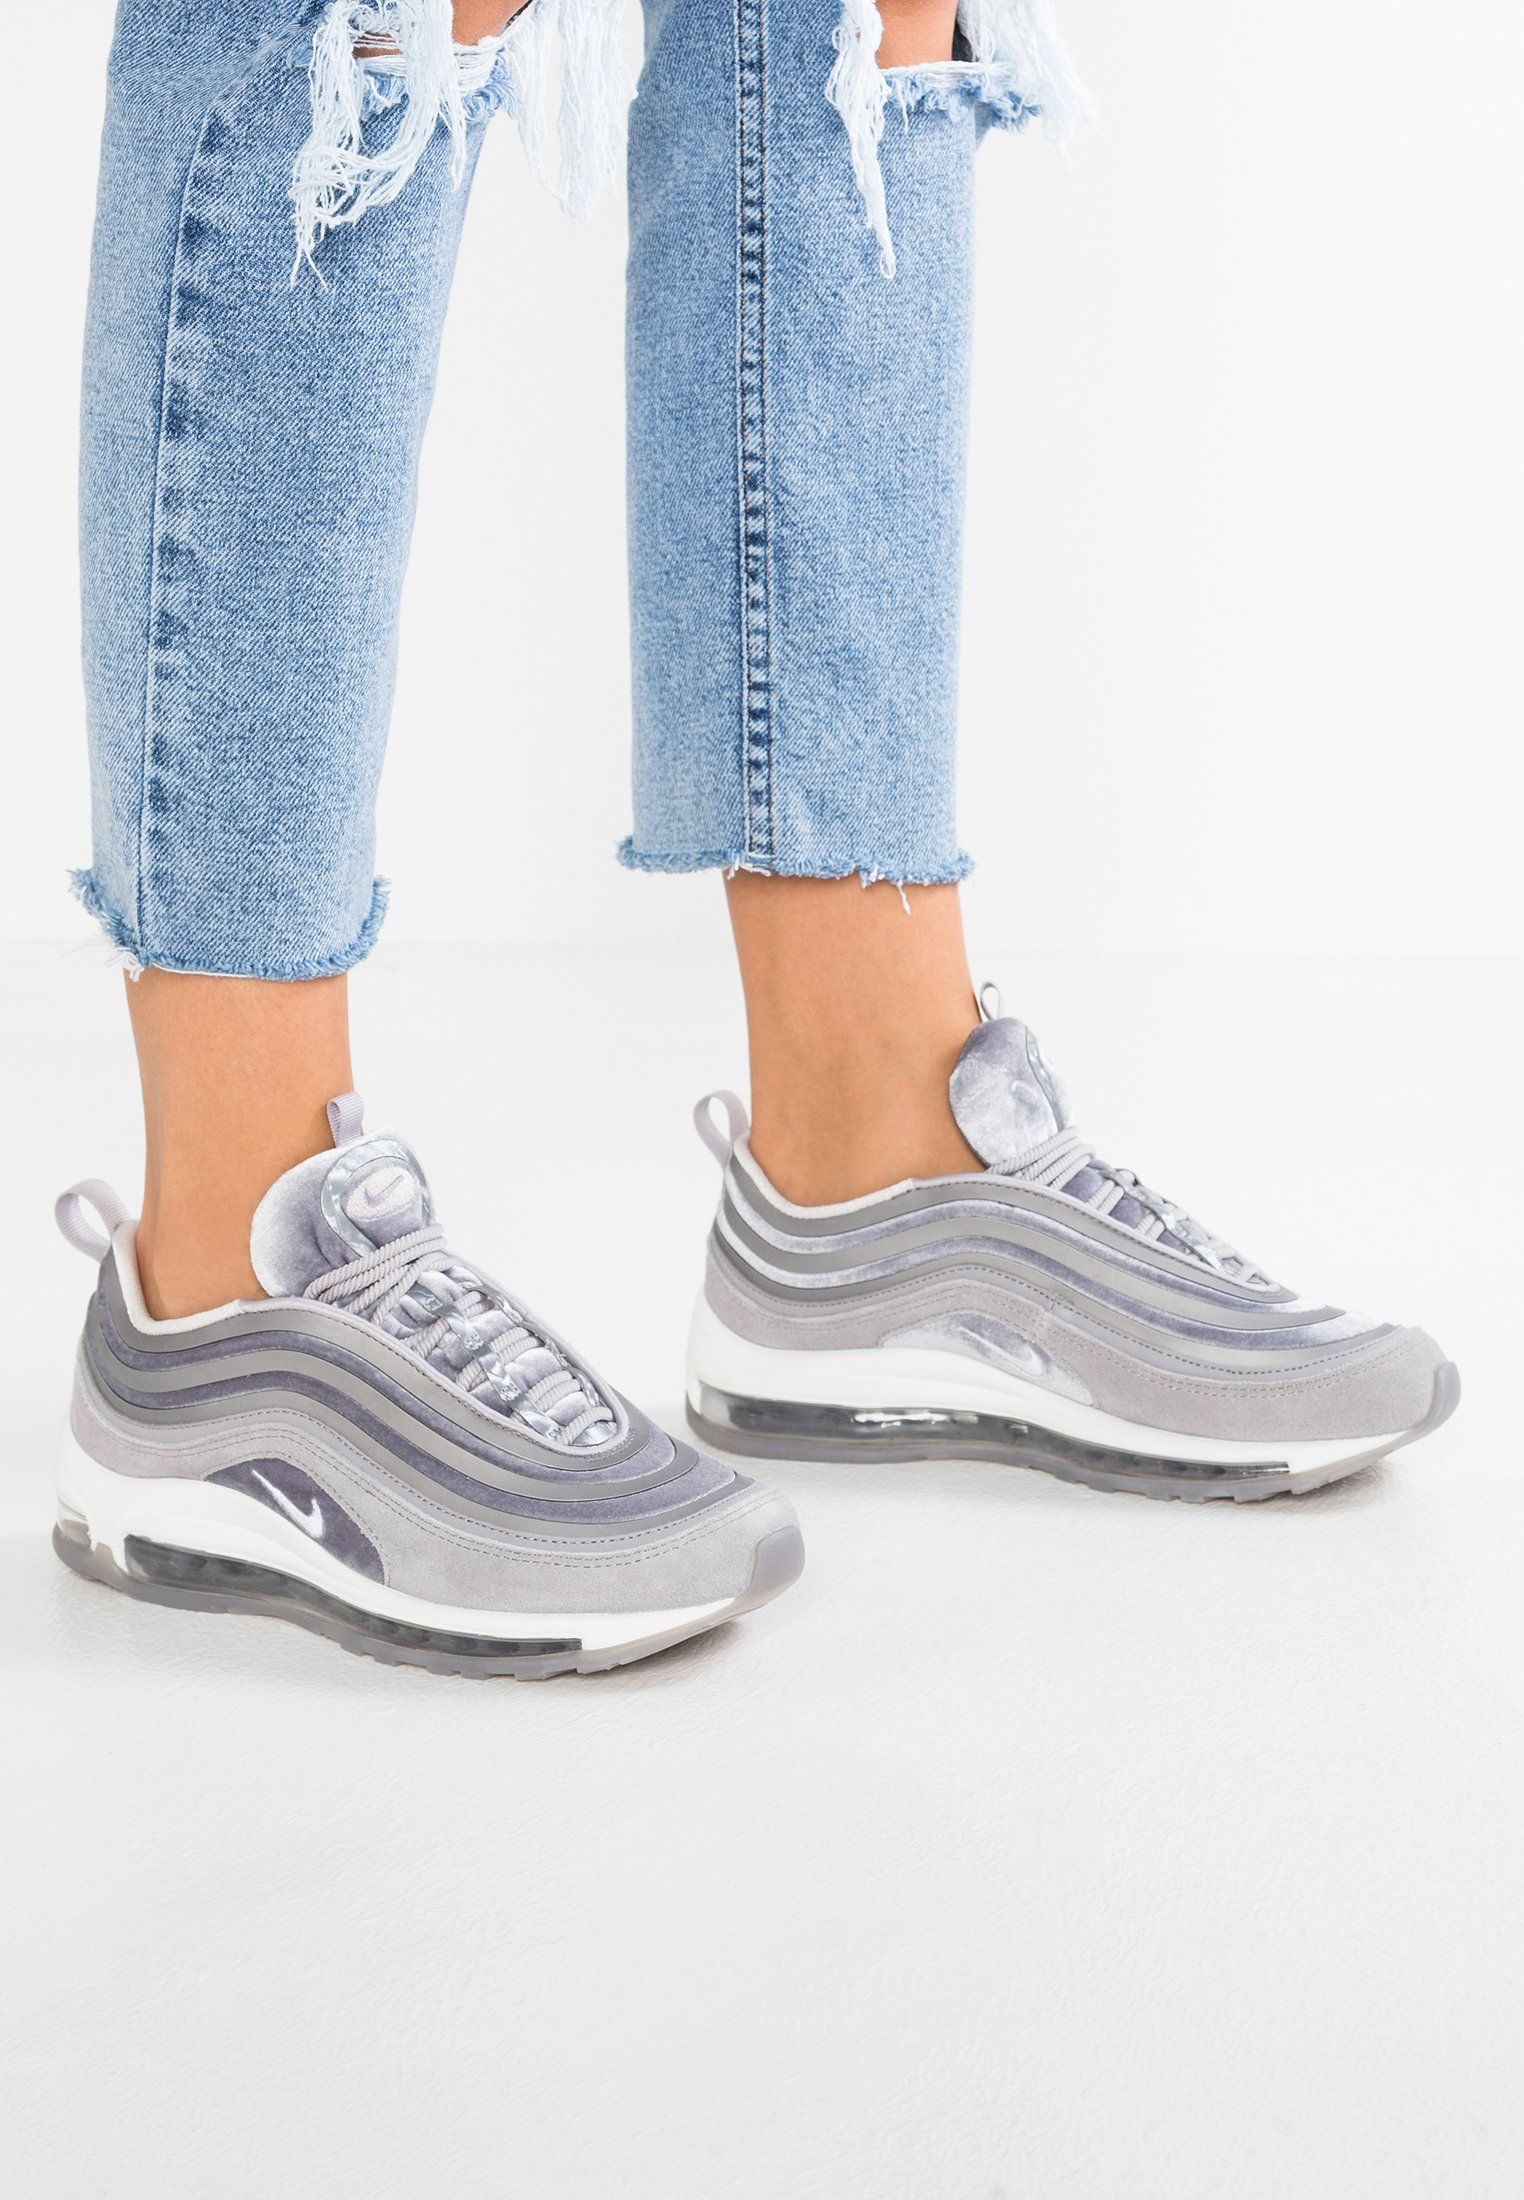 Moins cher Nike AIR MAX 95 LX Baskets basses gunsmoke